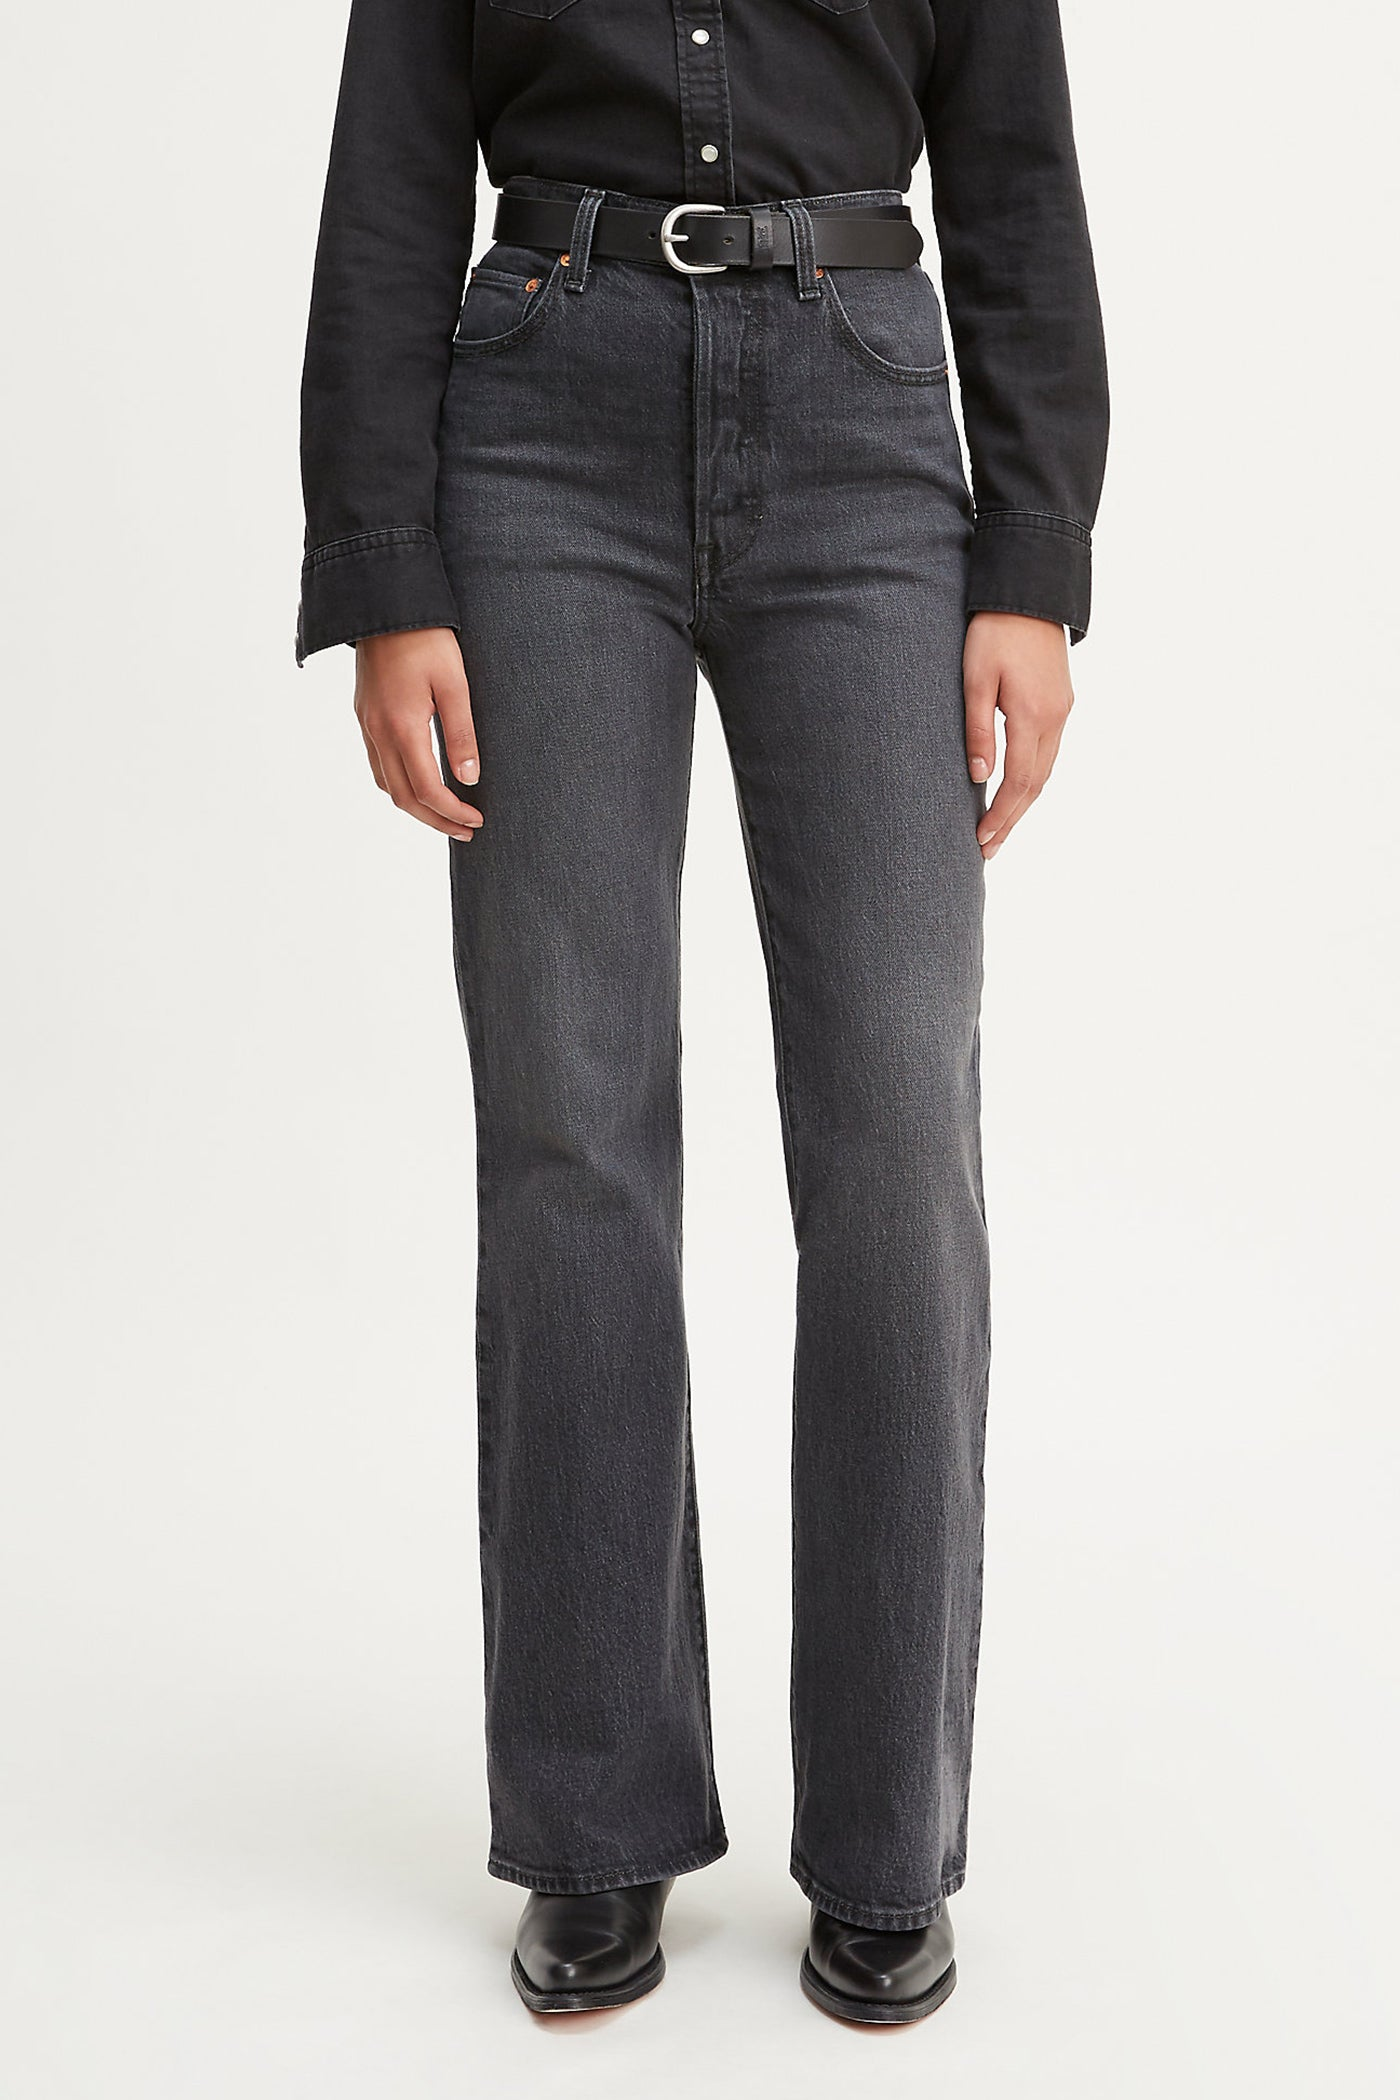 Lost Control Jeans by Levi's